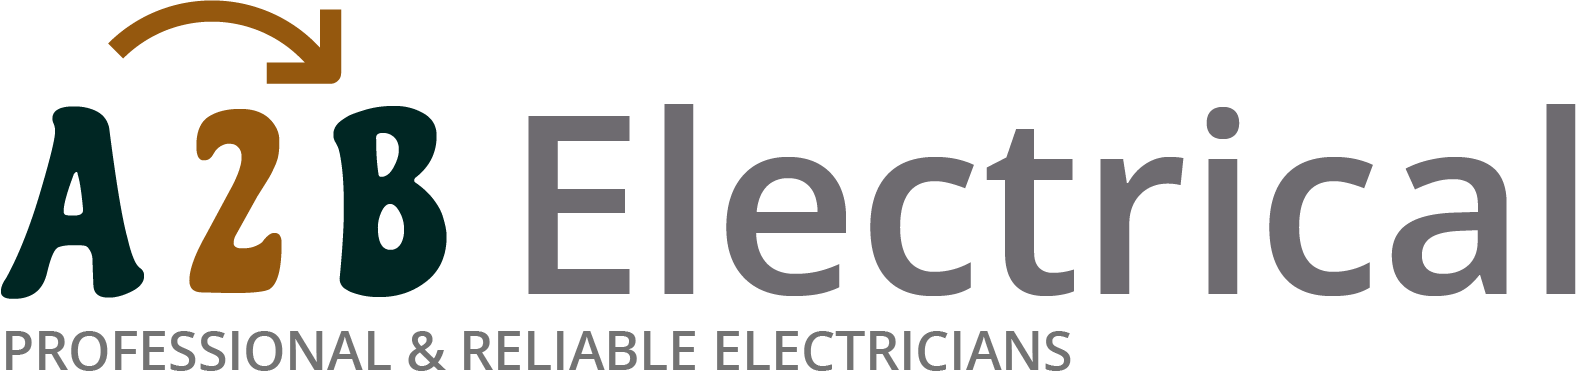 If you have electrical wiring problems in Holloway, we can provide an electrician to have a look for you.